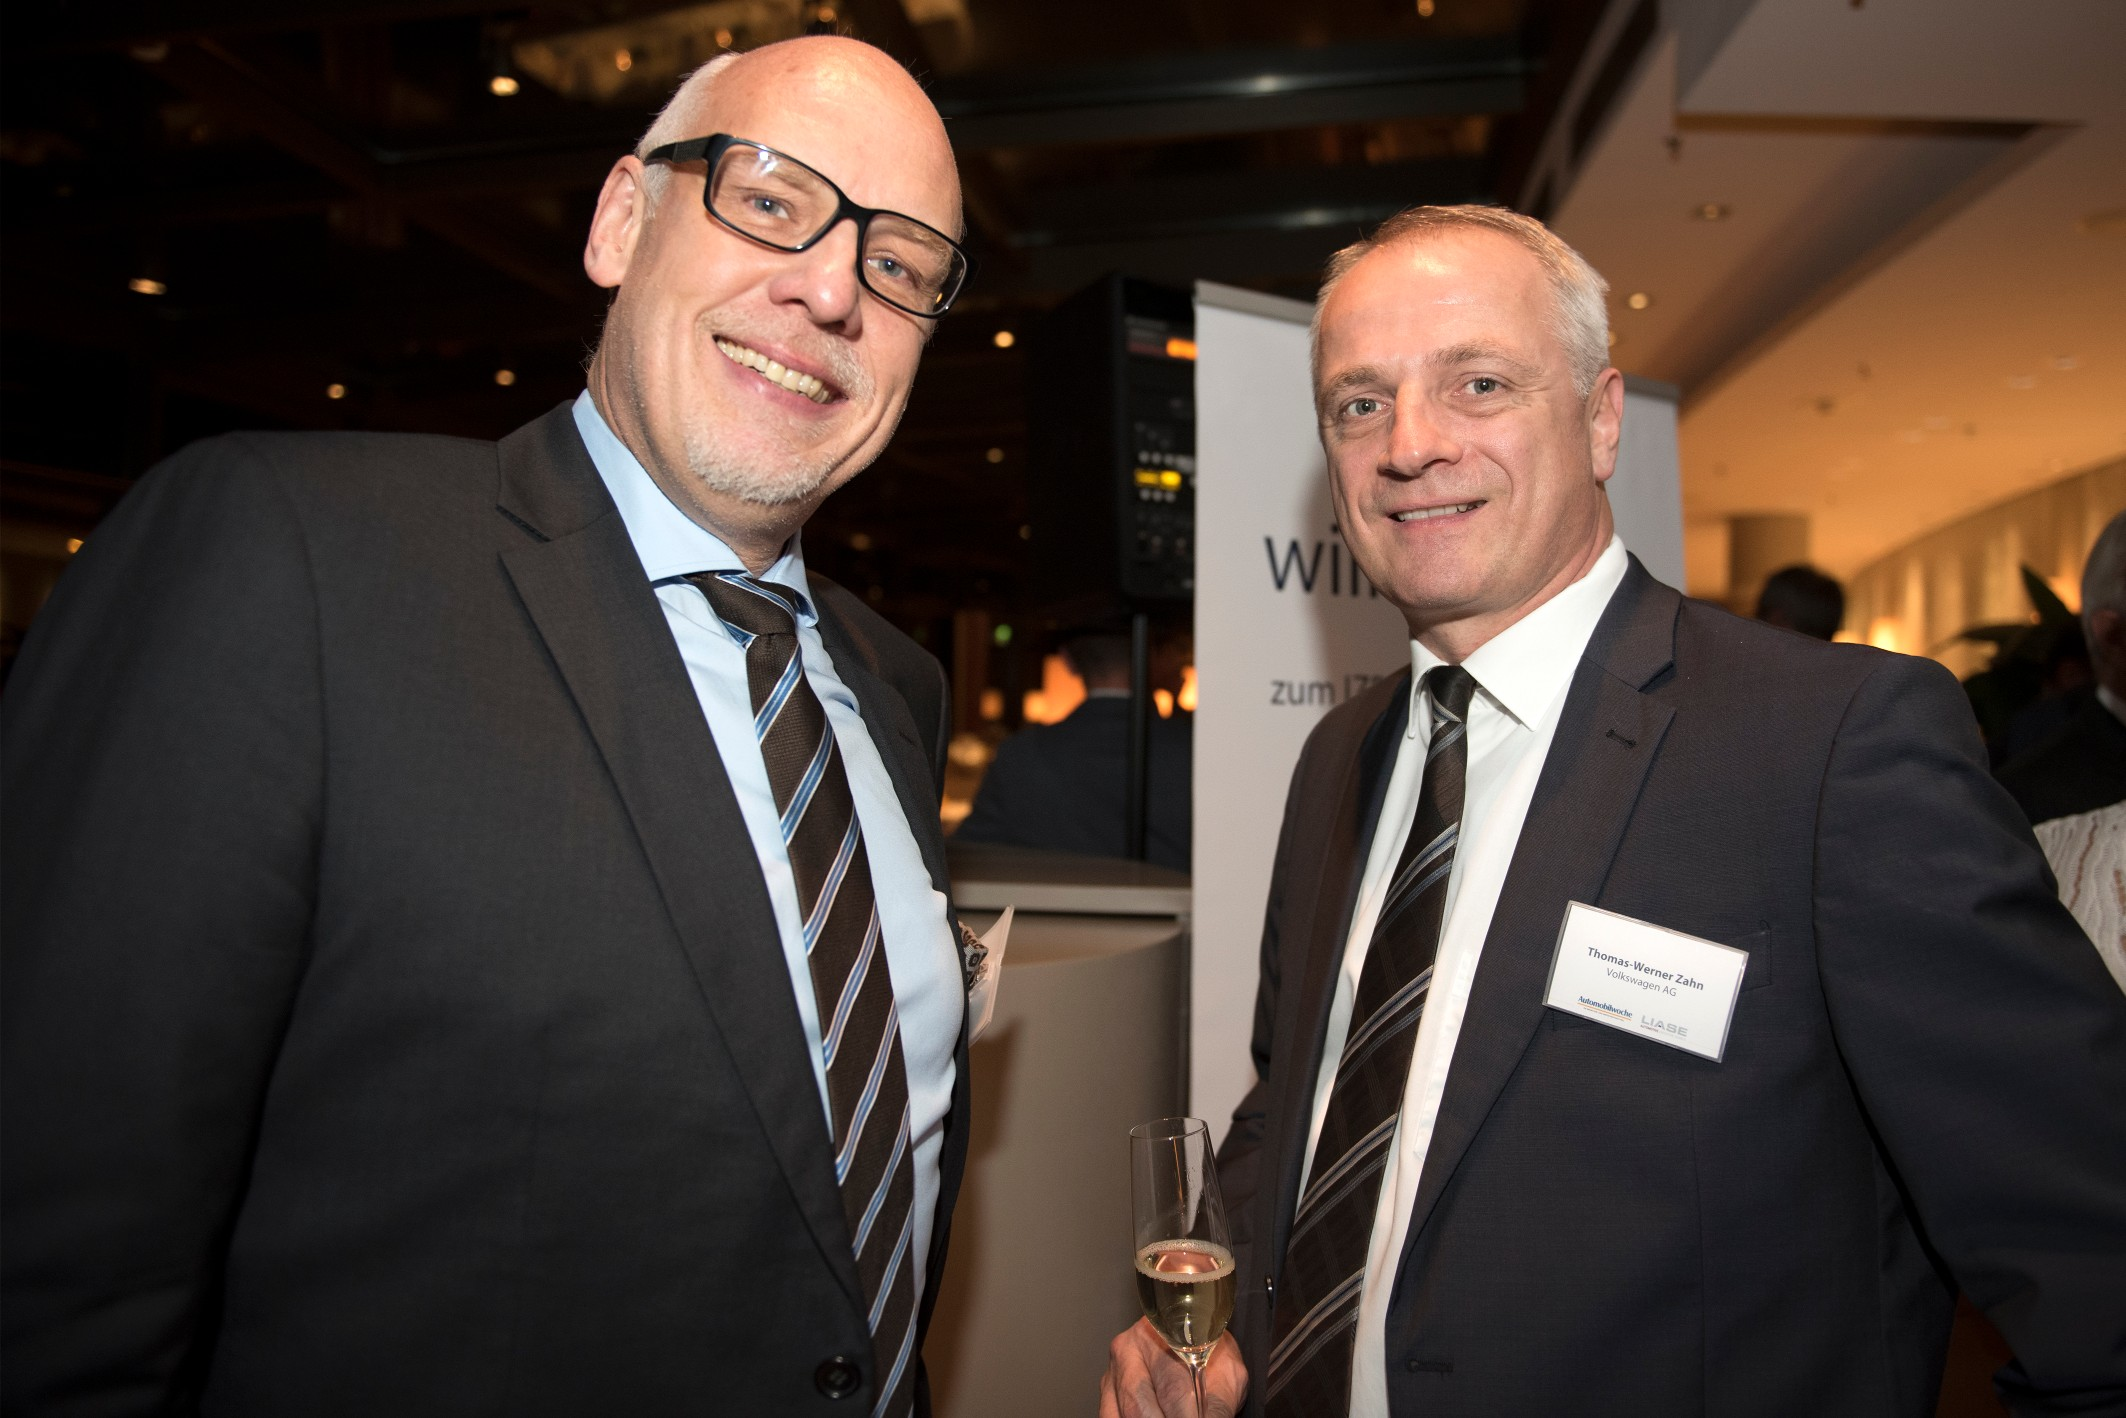 Henning Krogh, Reporter at Automobilwoche, and Thomas-Werner Zahn, Head of Sales and Marketing at Volkswagen.